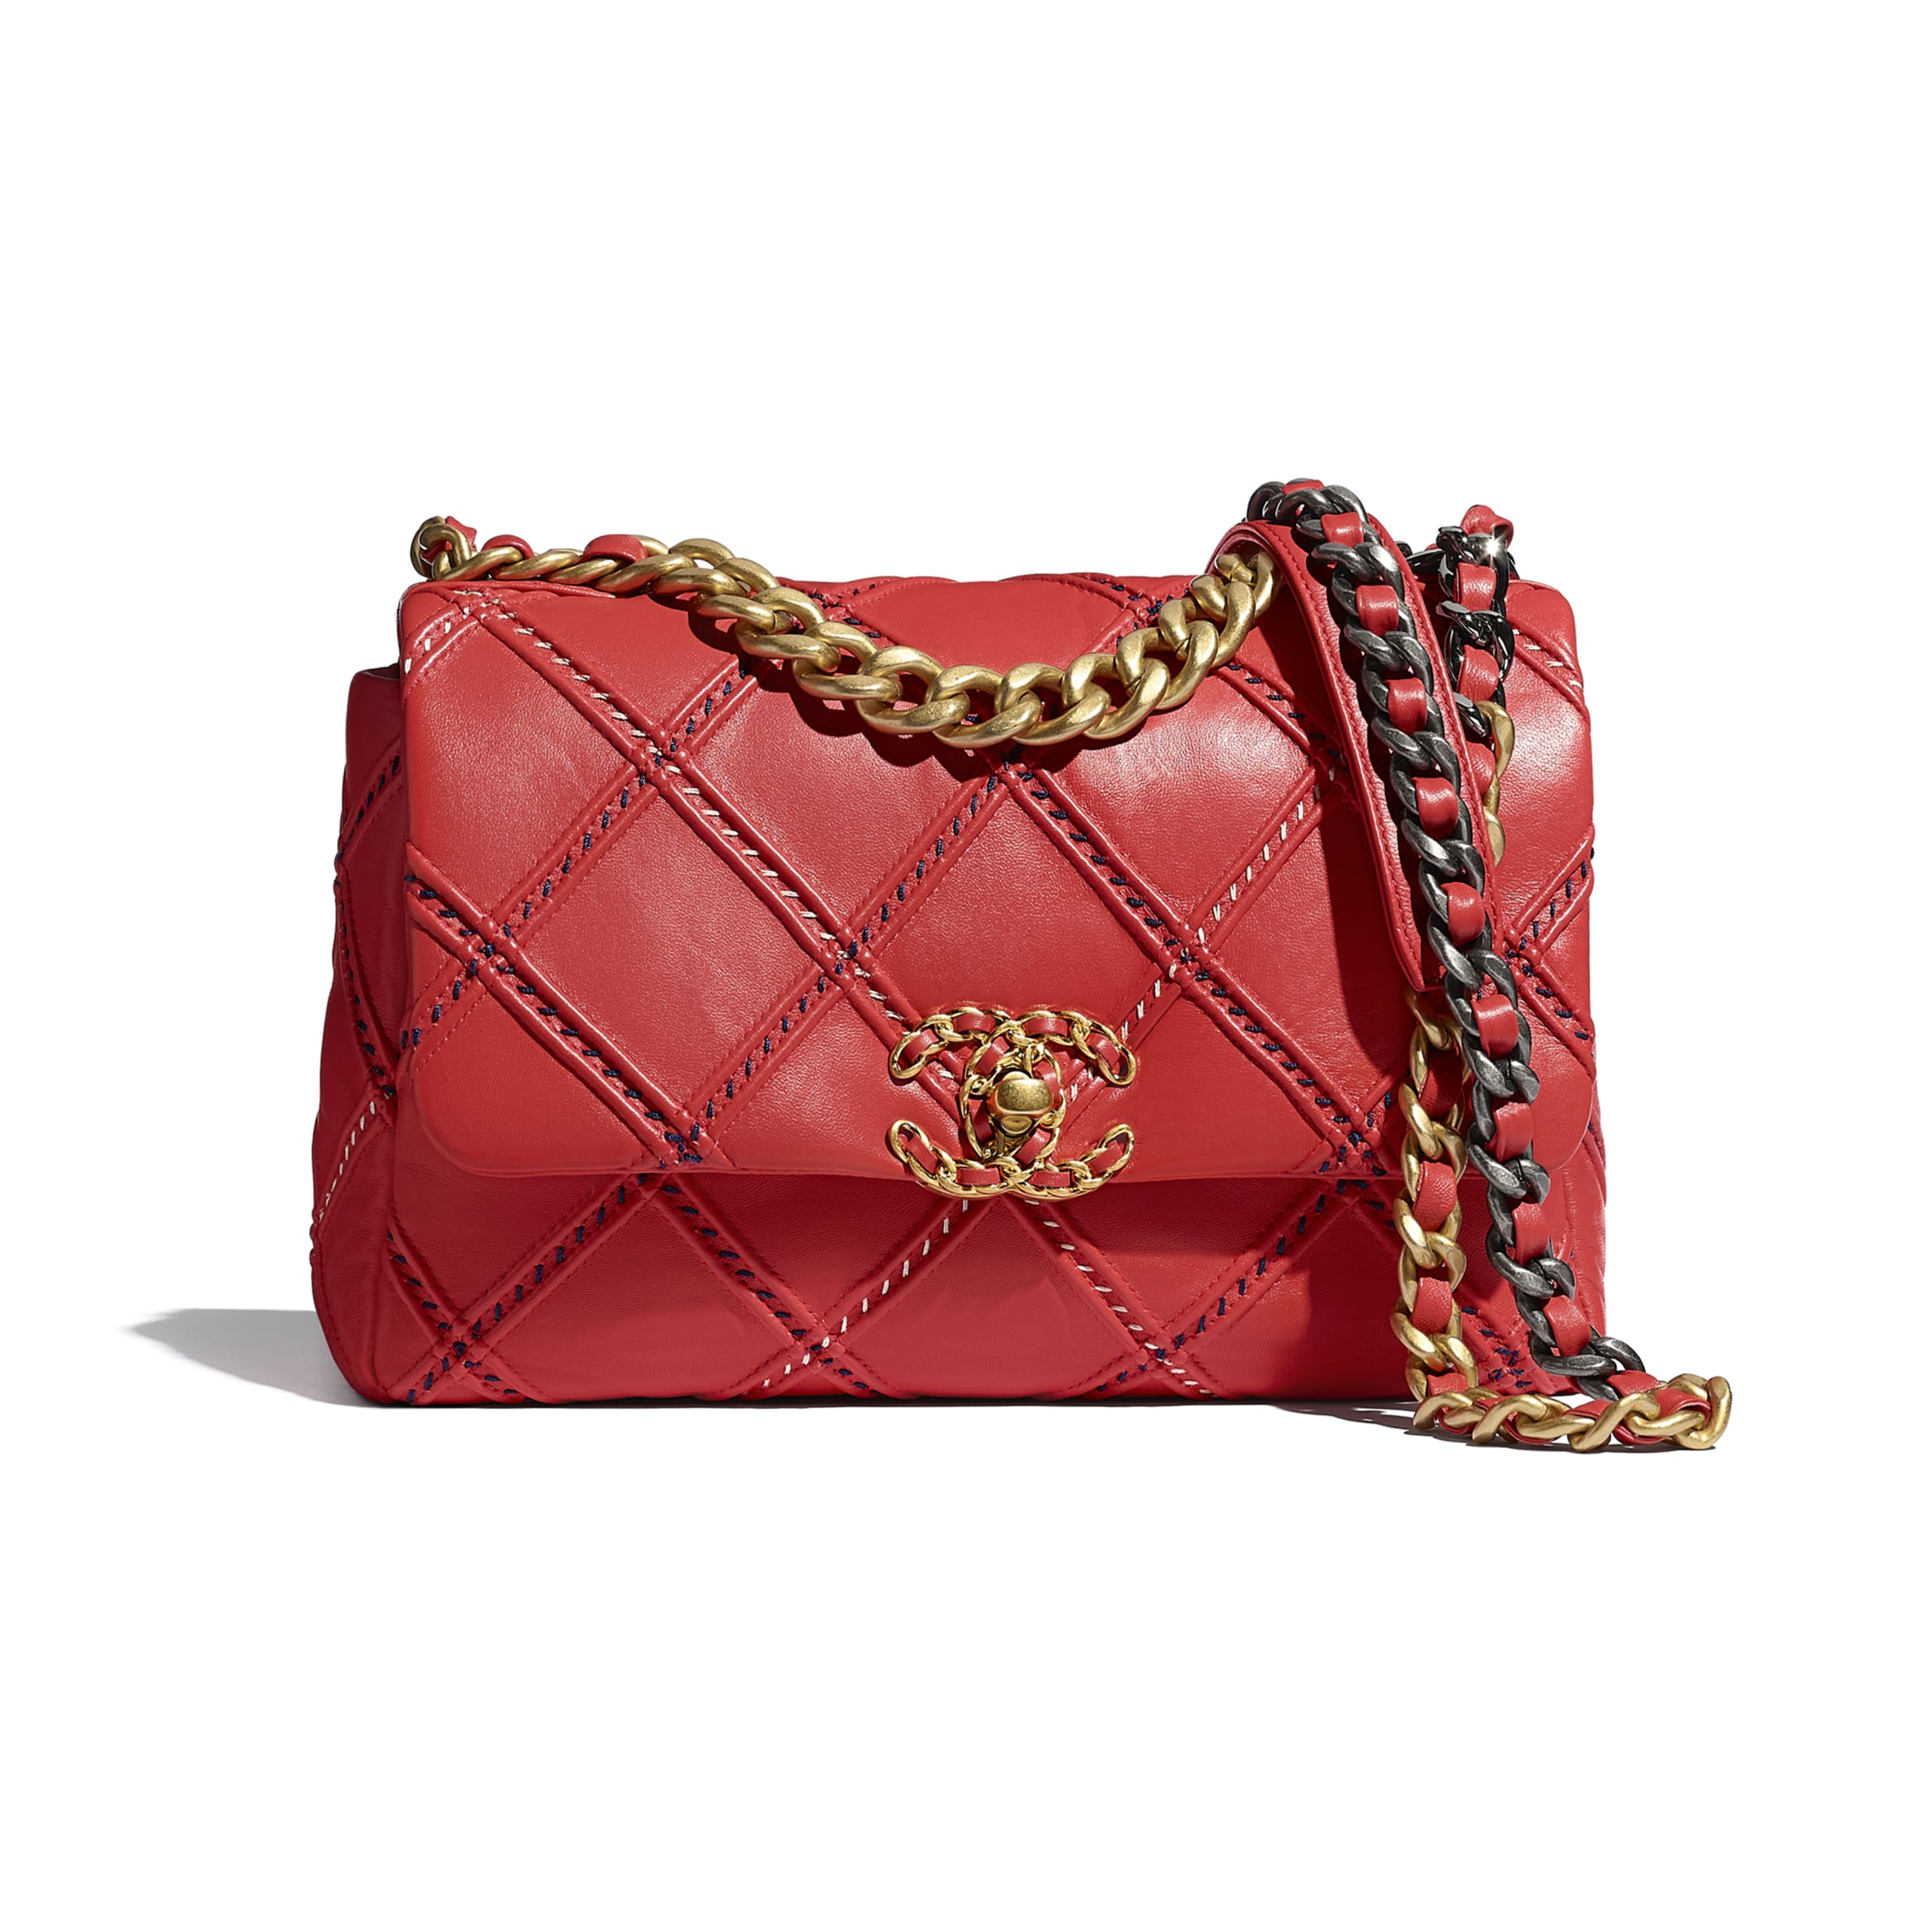 CHANEL 19 Flap Bag - Red - Lambskin, Mixed Fibres, Gold-Tone, Silver-Tone & Ruthenium-Finish Metal - CHANEL - Default view - see standard sized version